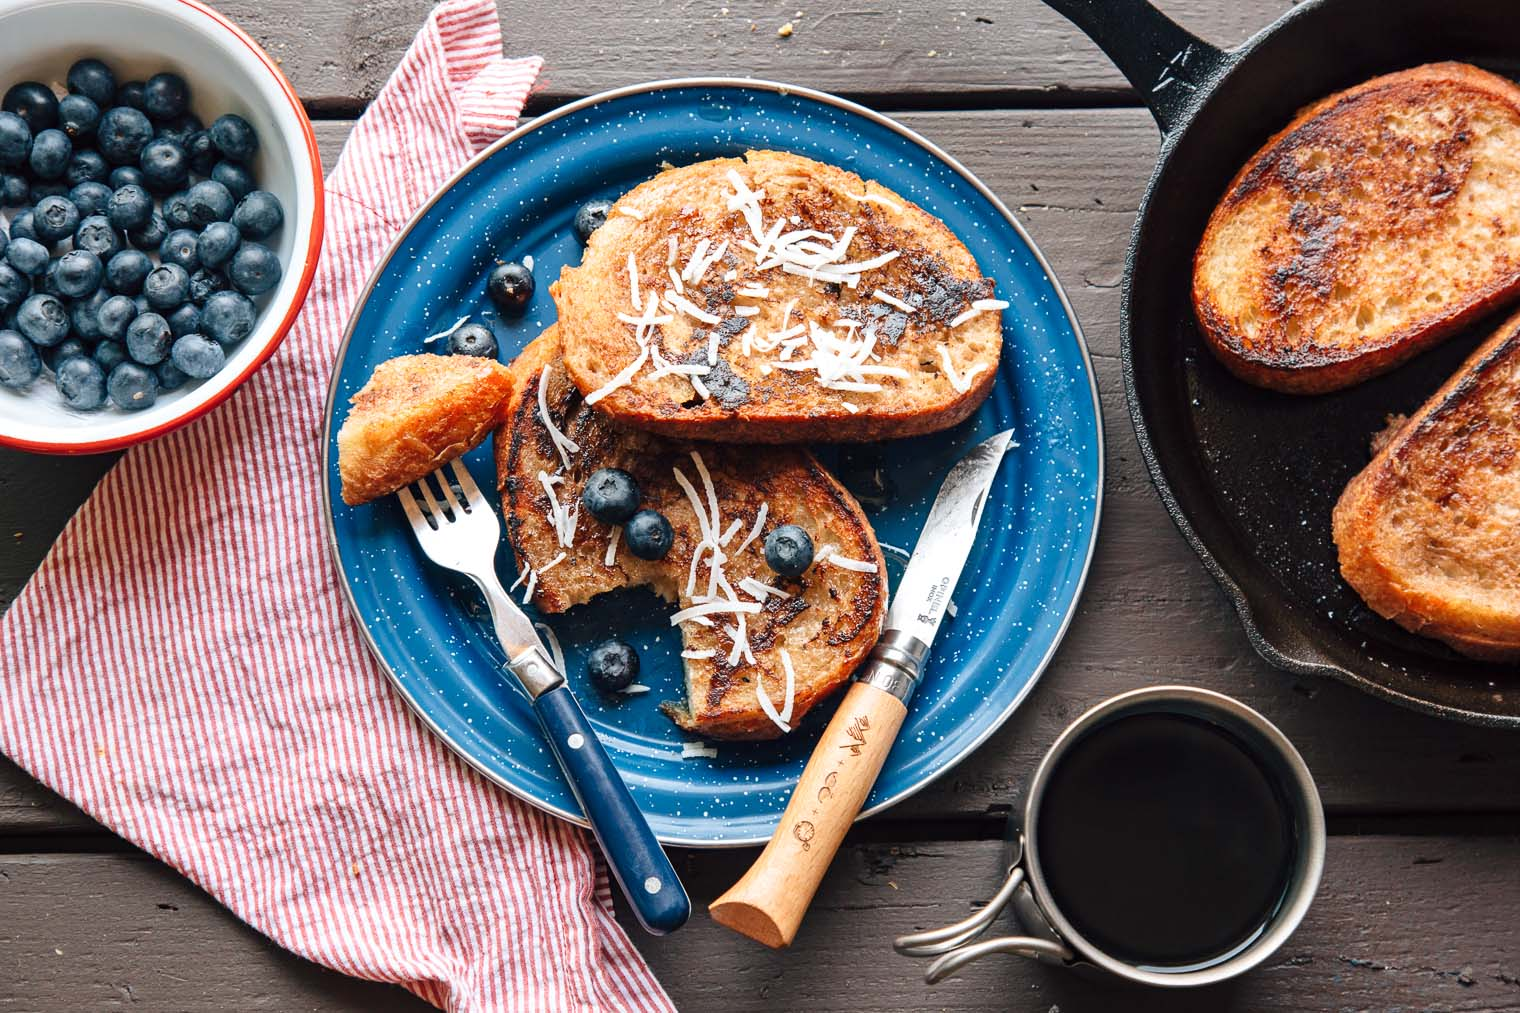 Three pieces of French toast on a blue enamel plate